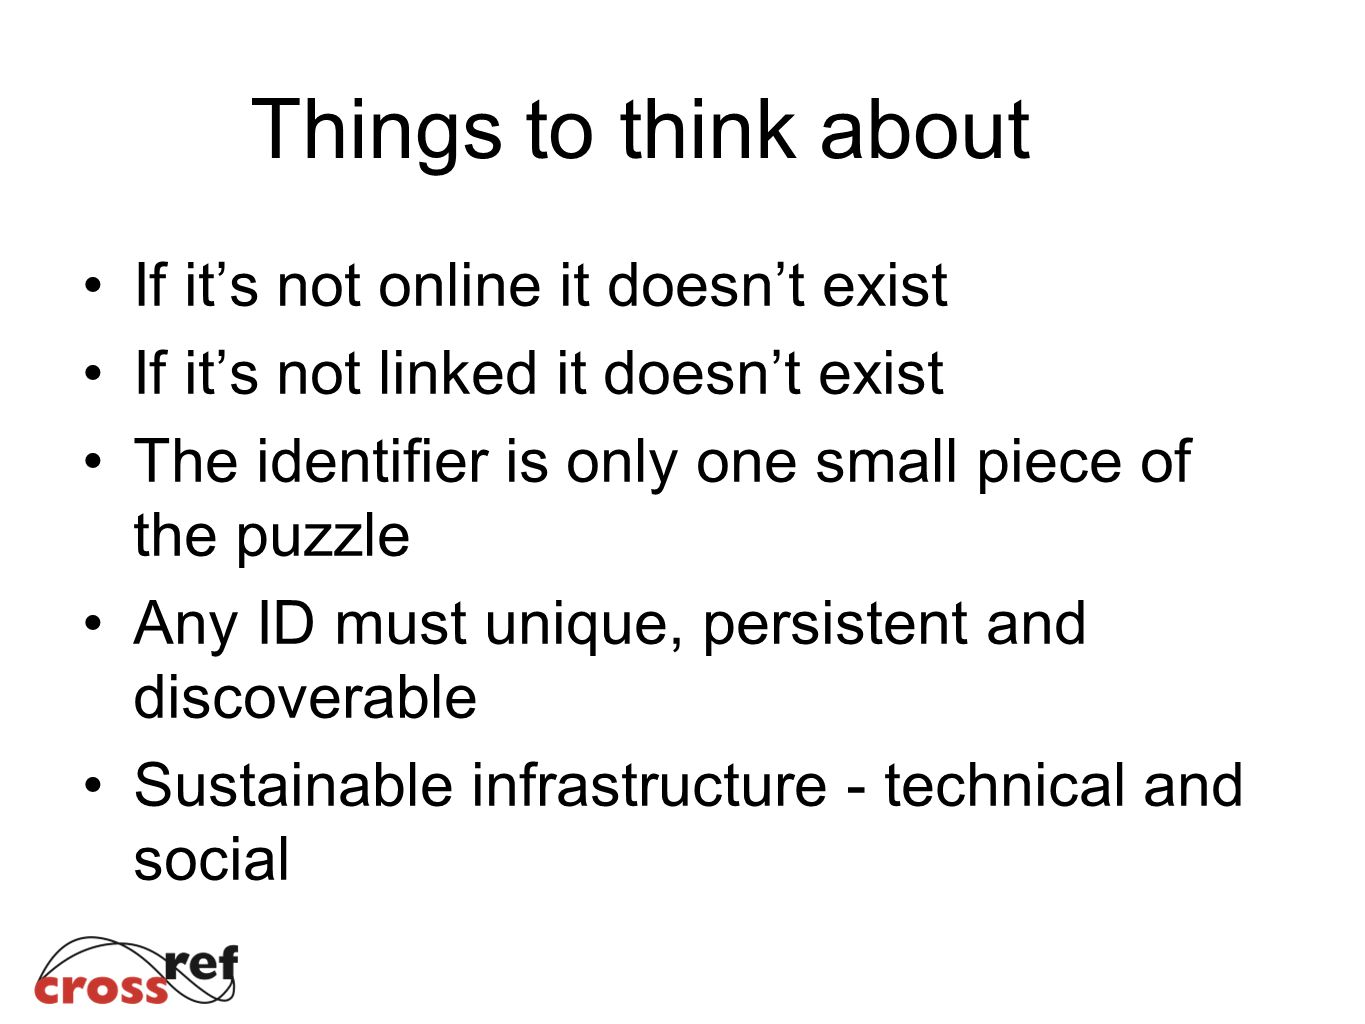 Things to think about If its not online it doesnt exist If its not linked it doesnt exist The identifier is only one small piece of the puzzle Any ID must unique, persistent and discoverable Sustainable infrastructure - technical and social